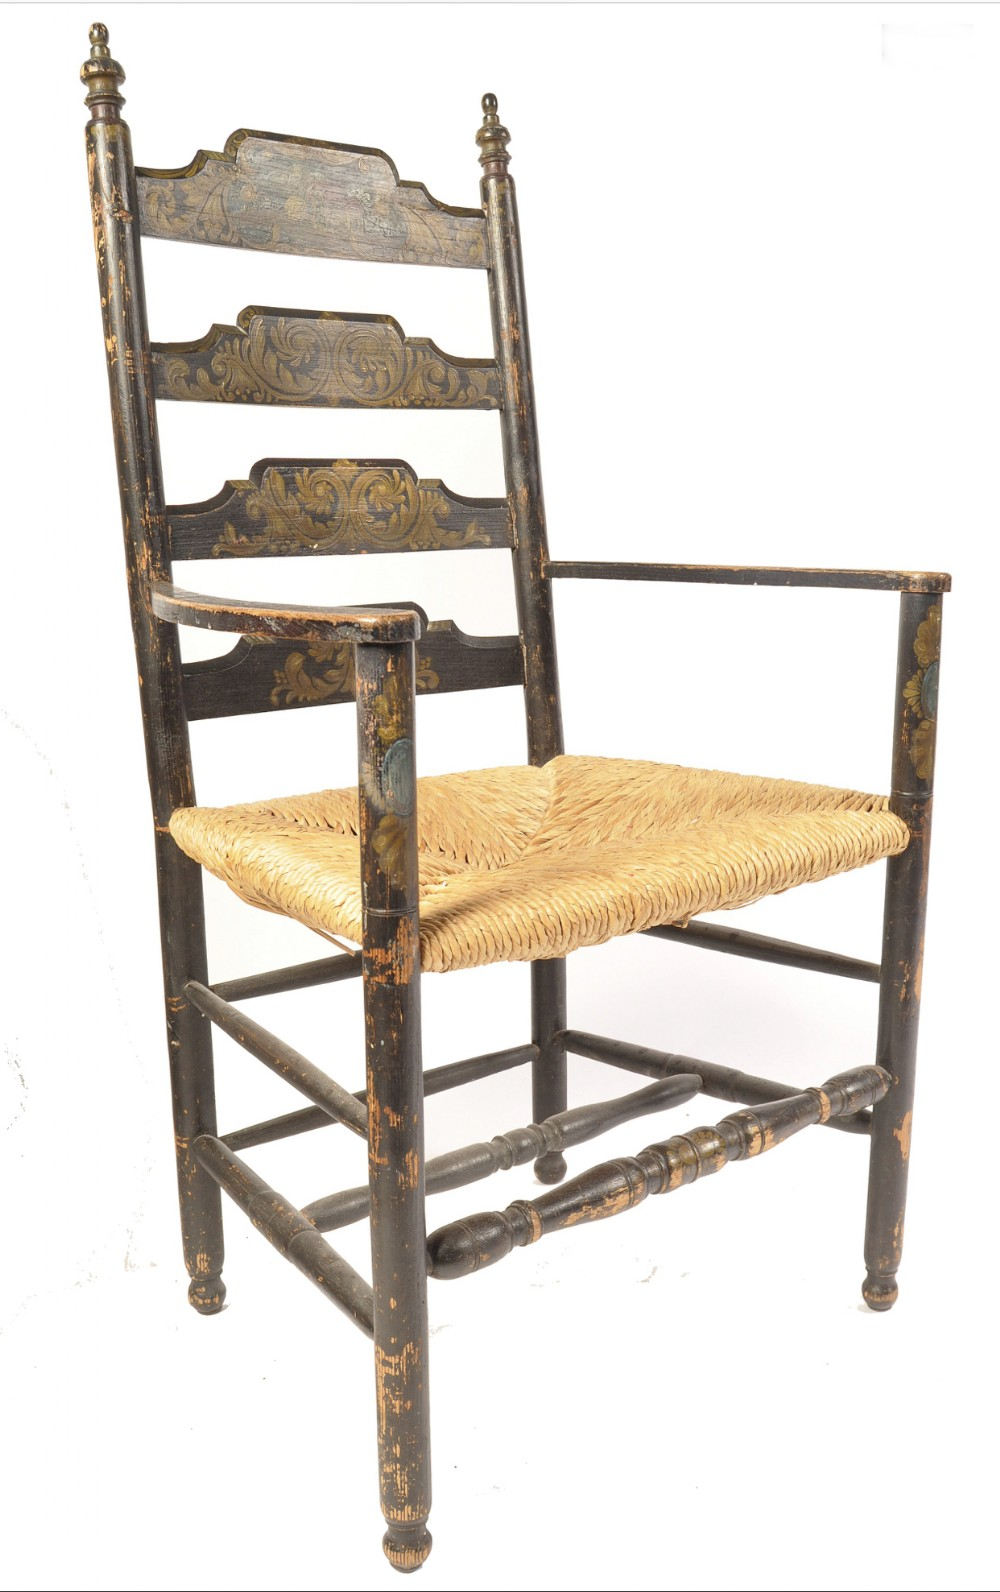 c19th american painted ladder back chair